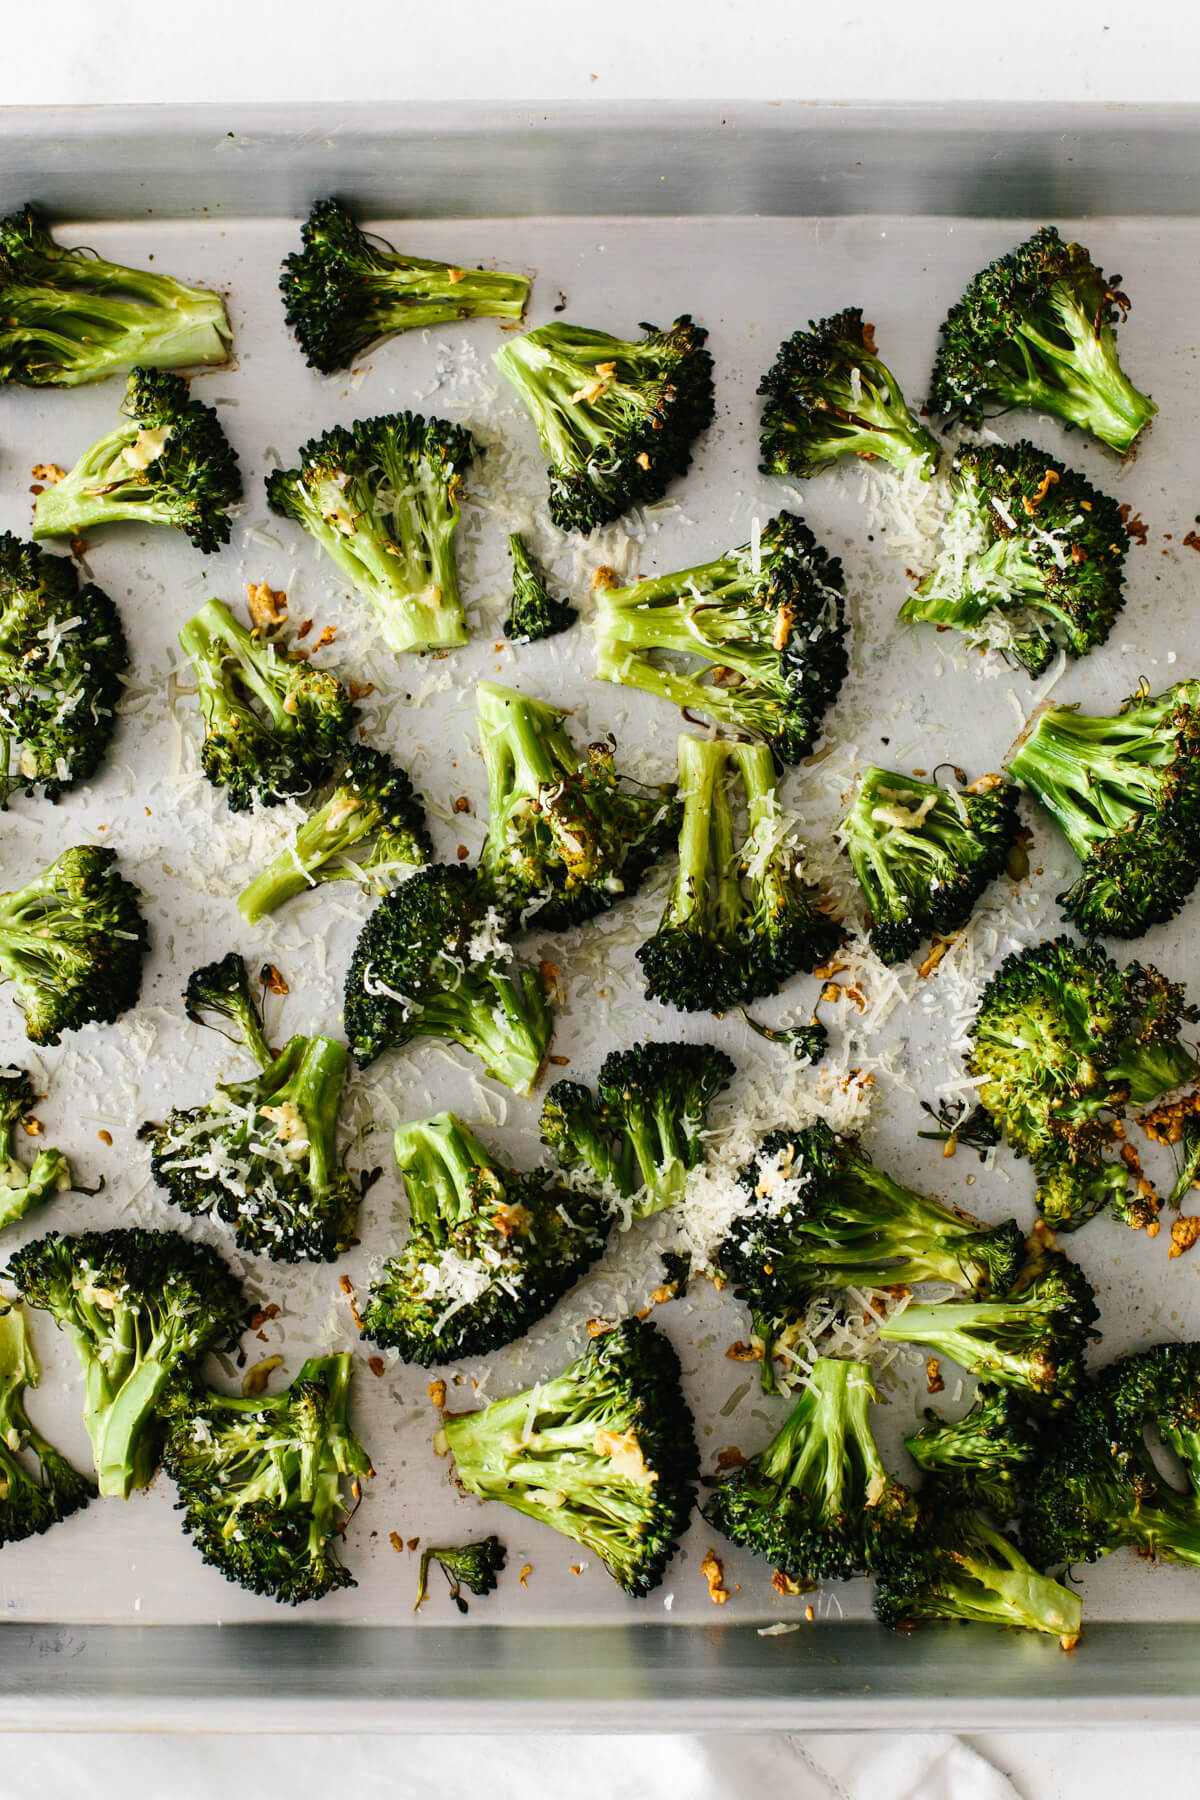 Roasted broccoli on a sheet tray.